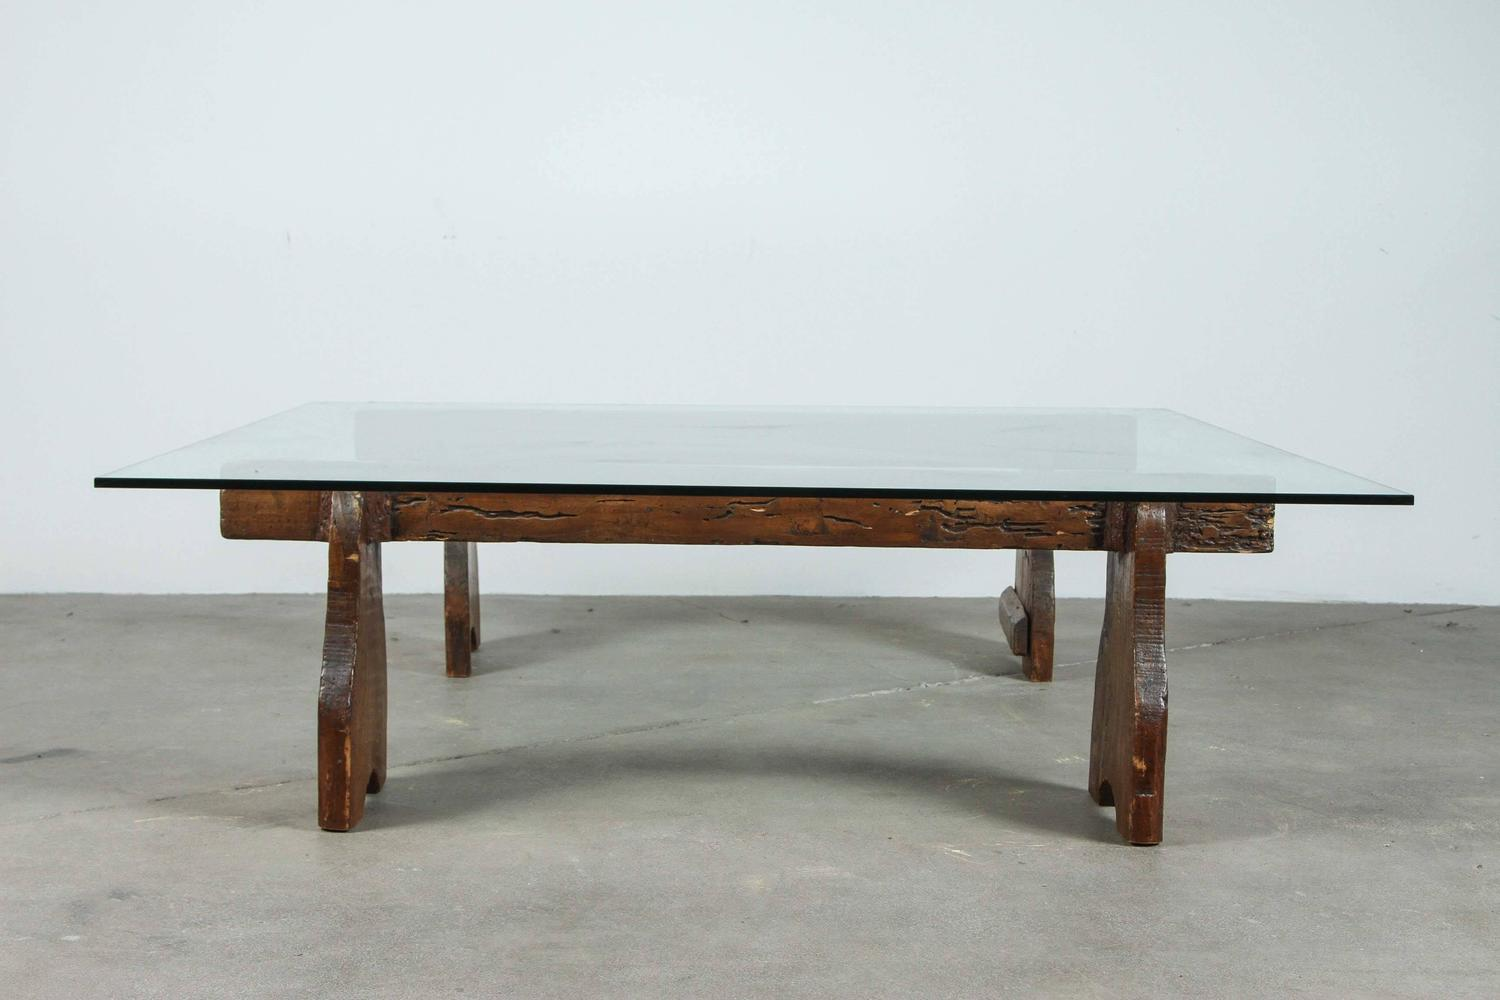 Rustic Low Cocktail Table With Wood Base And Glass Top For Sale At 1stdibs